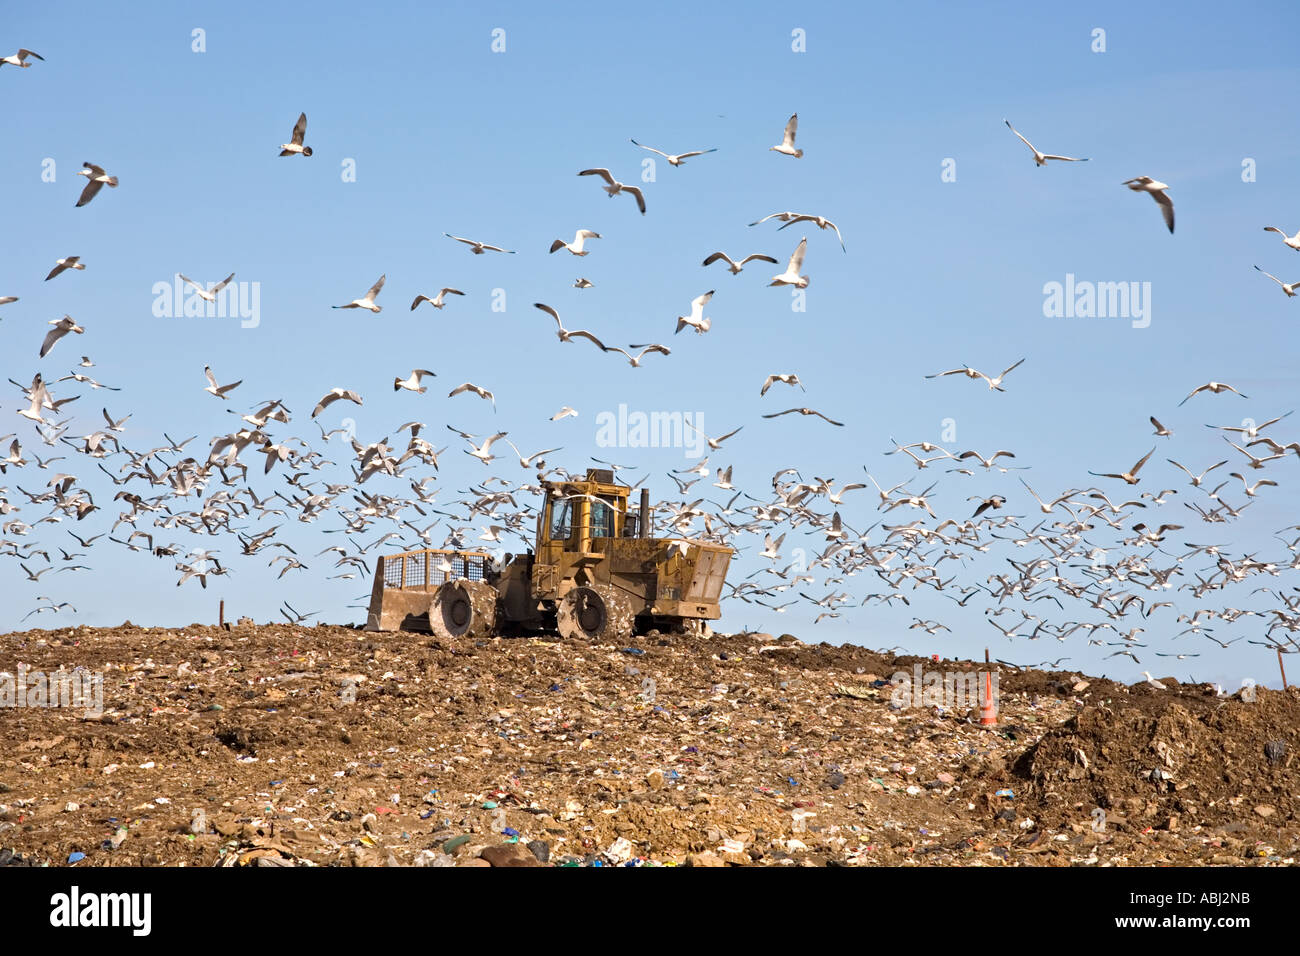 UK Landfill Site with Earthmover and circling Gulls - Stock Image